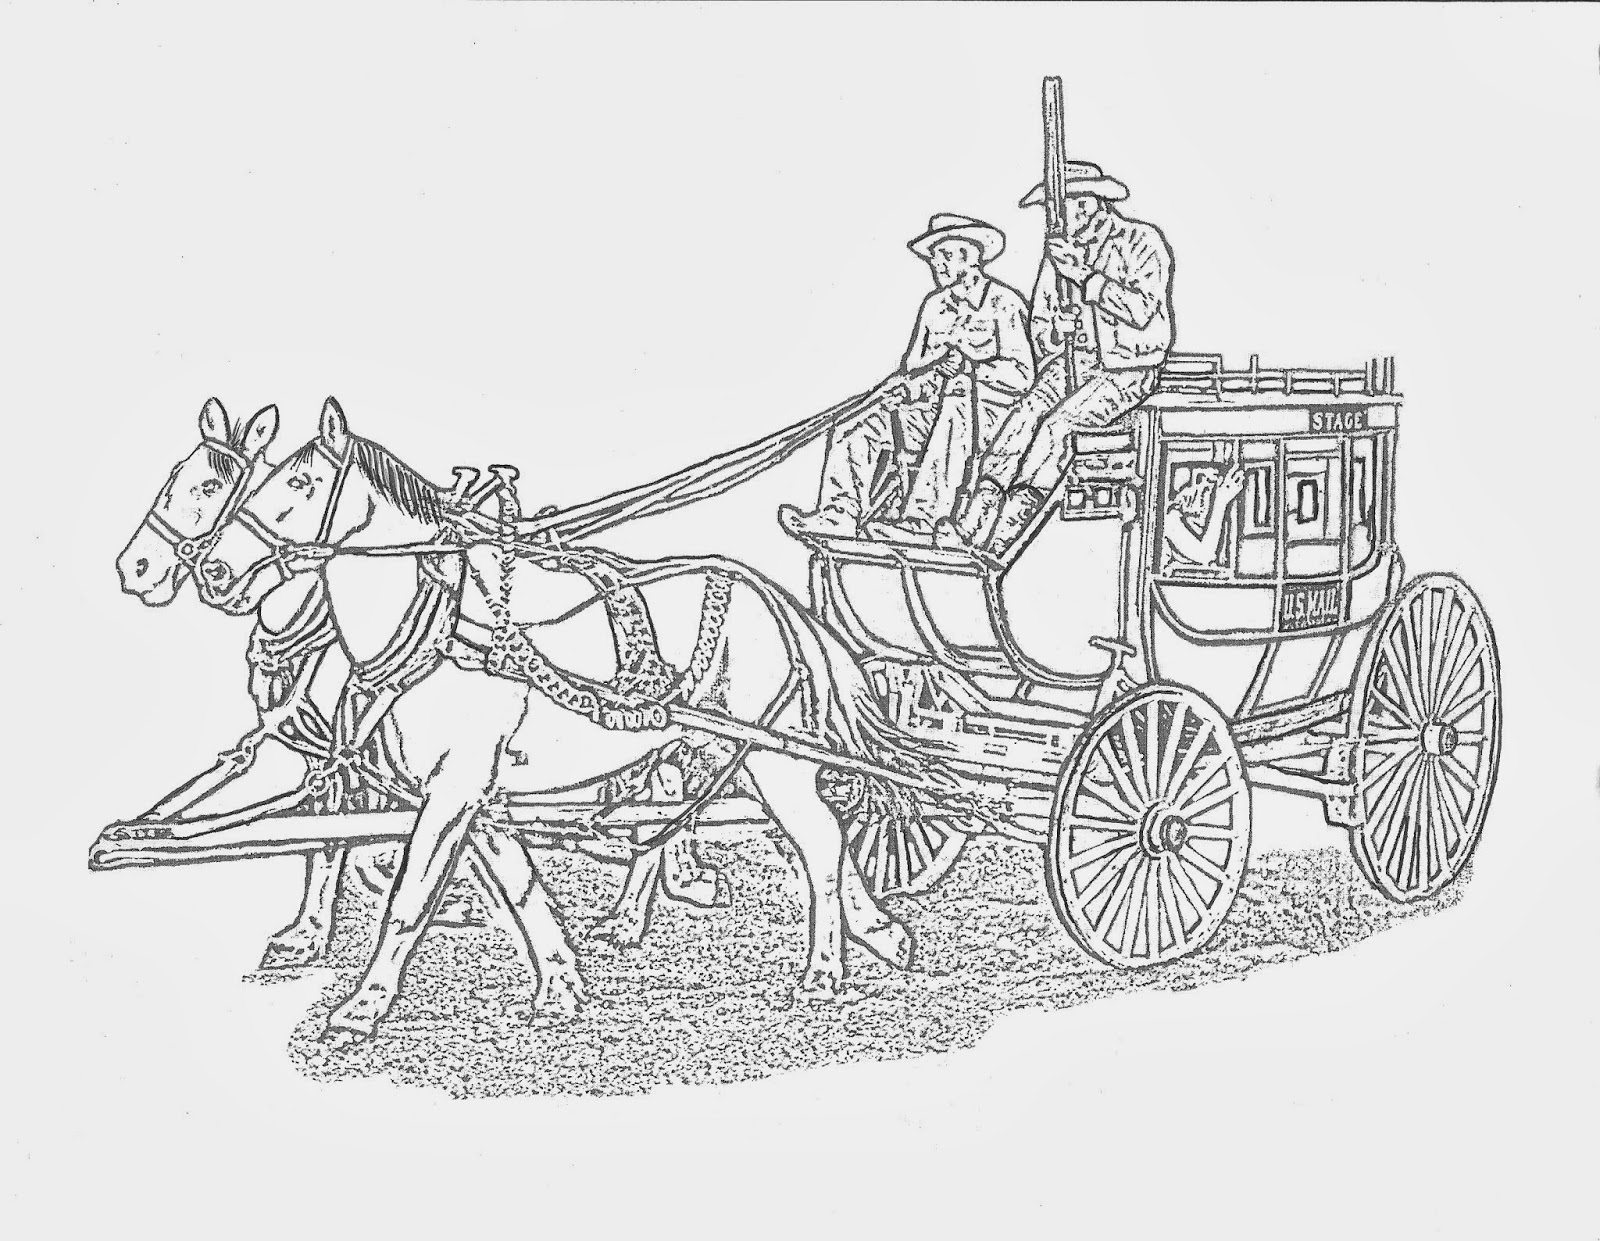 christian western coloring pages - photo#10